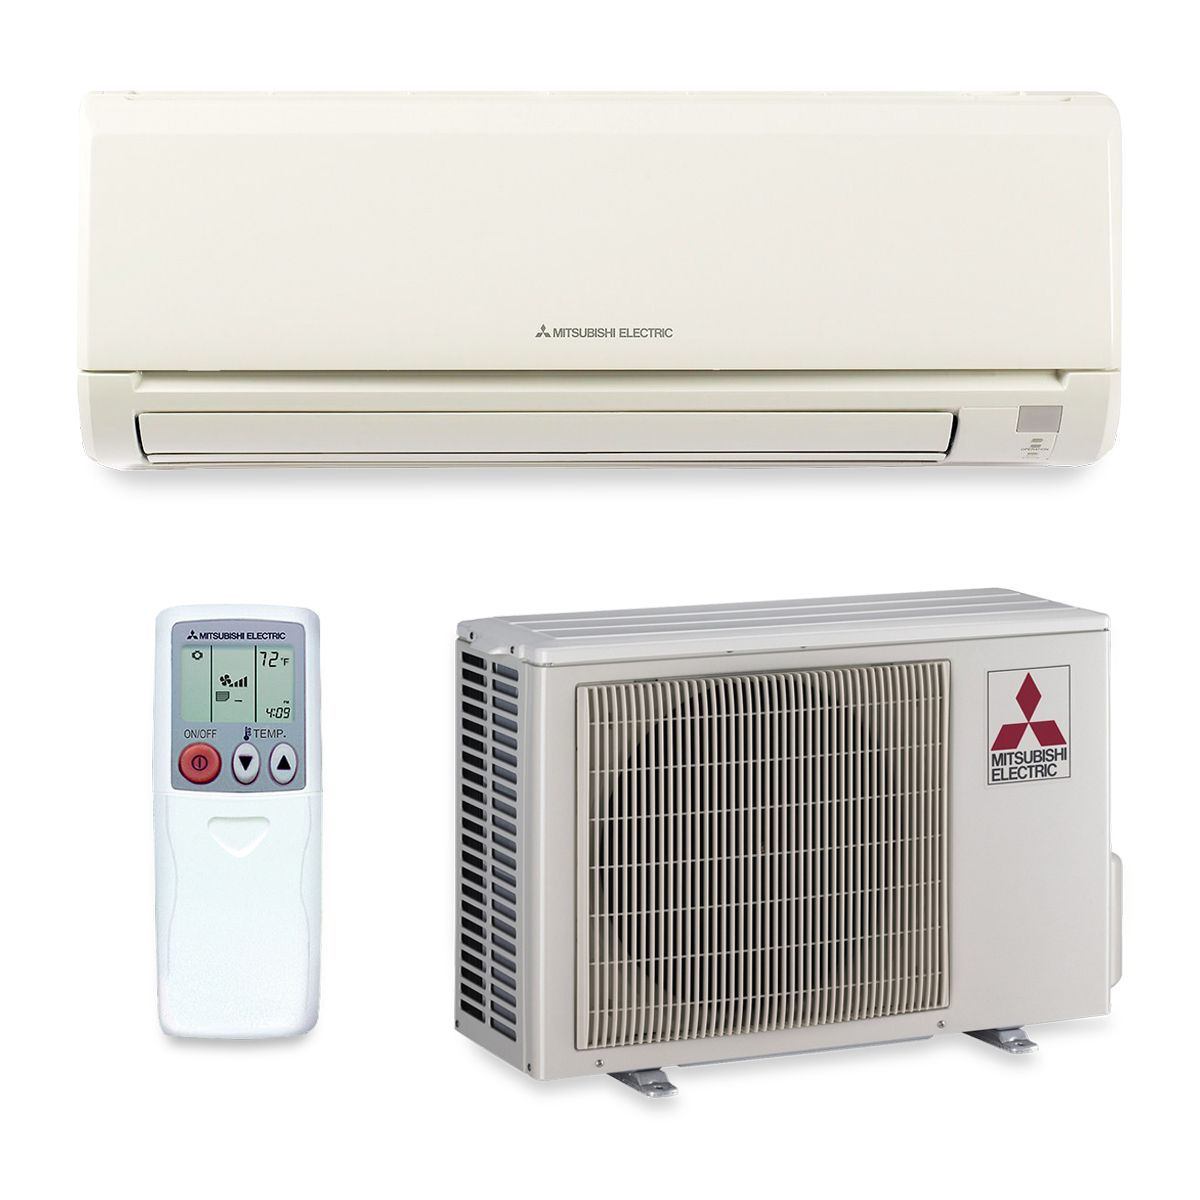 pumps system mitsubishi pump seer heat cooling heating old ductless and air btu hyper conditioners